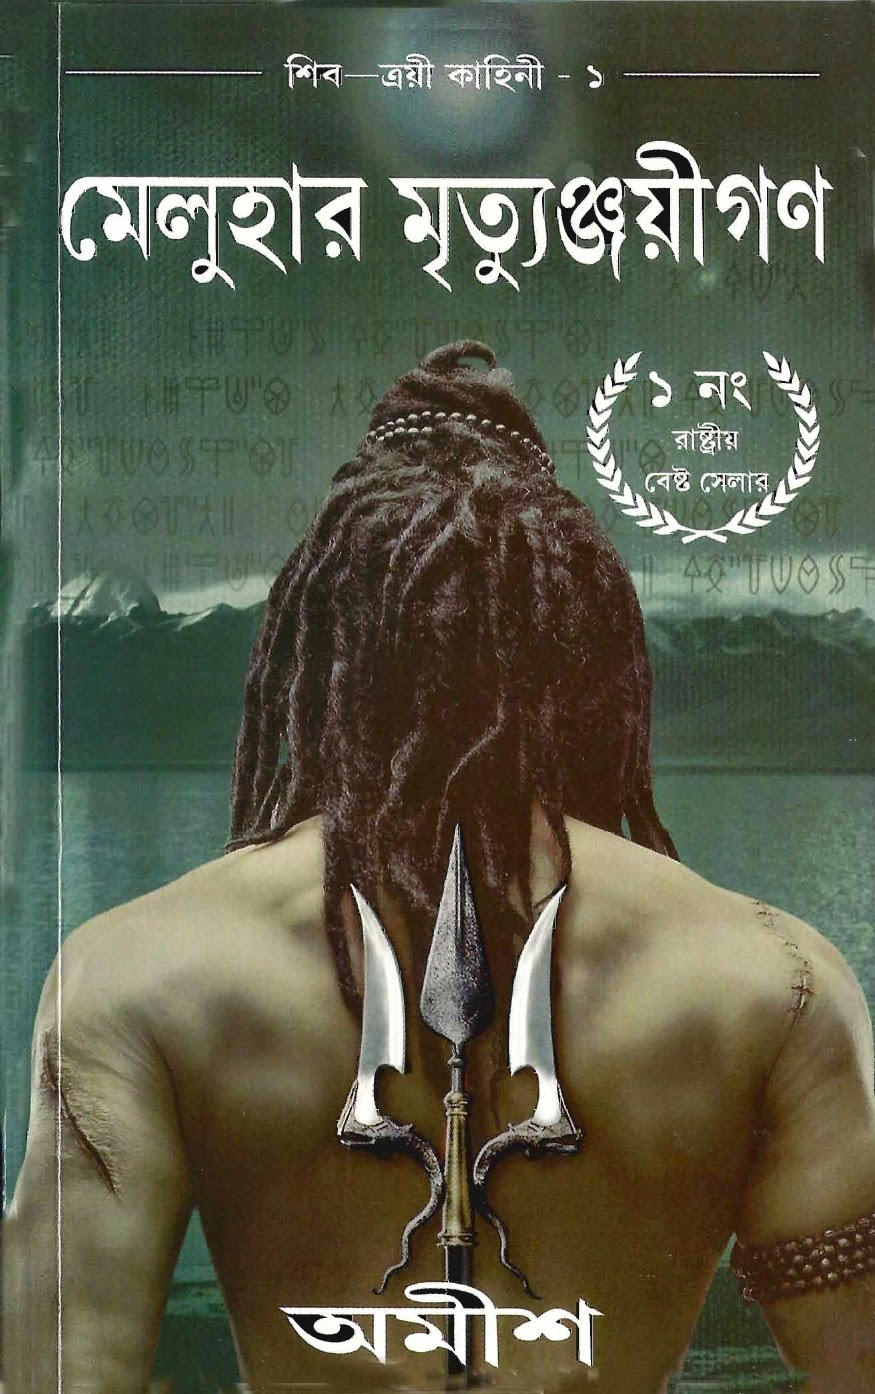 The Immortals of Meluha by Amish Tripathi (Shiva Trilogy 1 - Bangla Anubad)